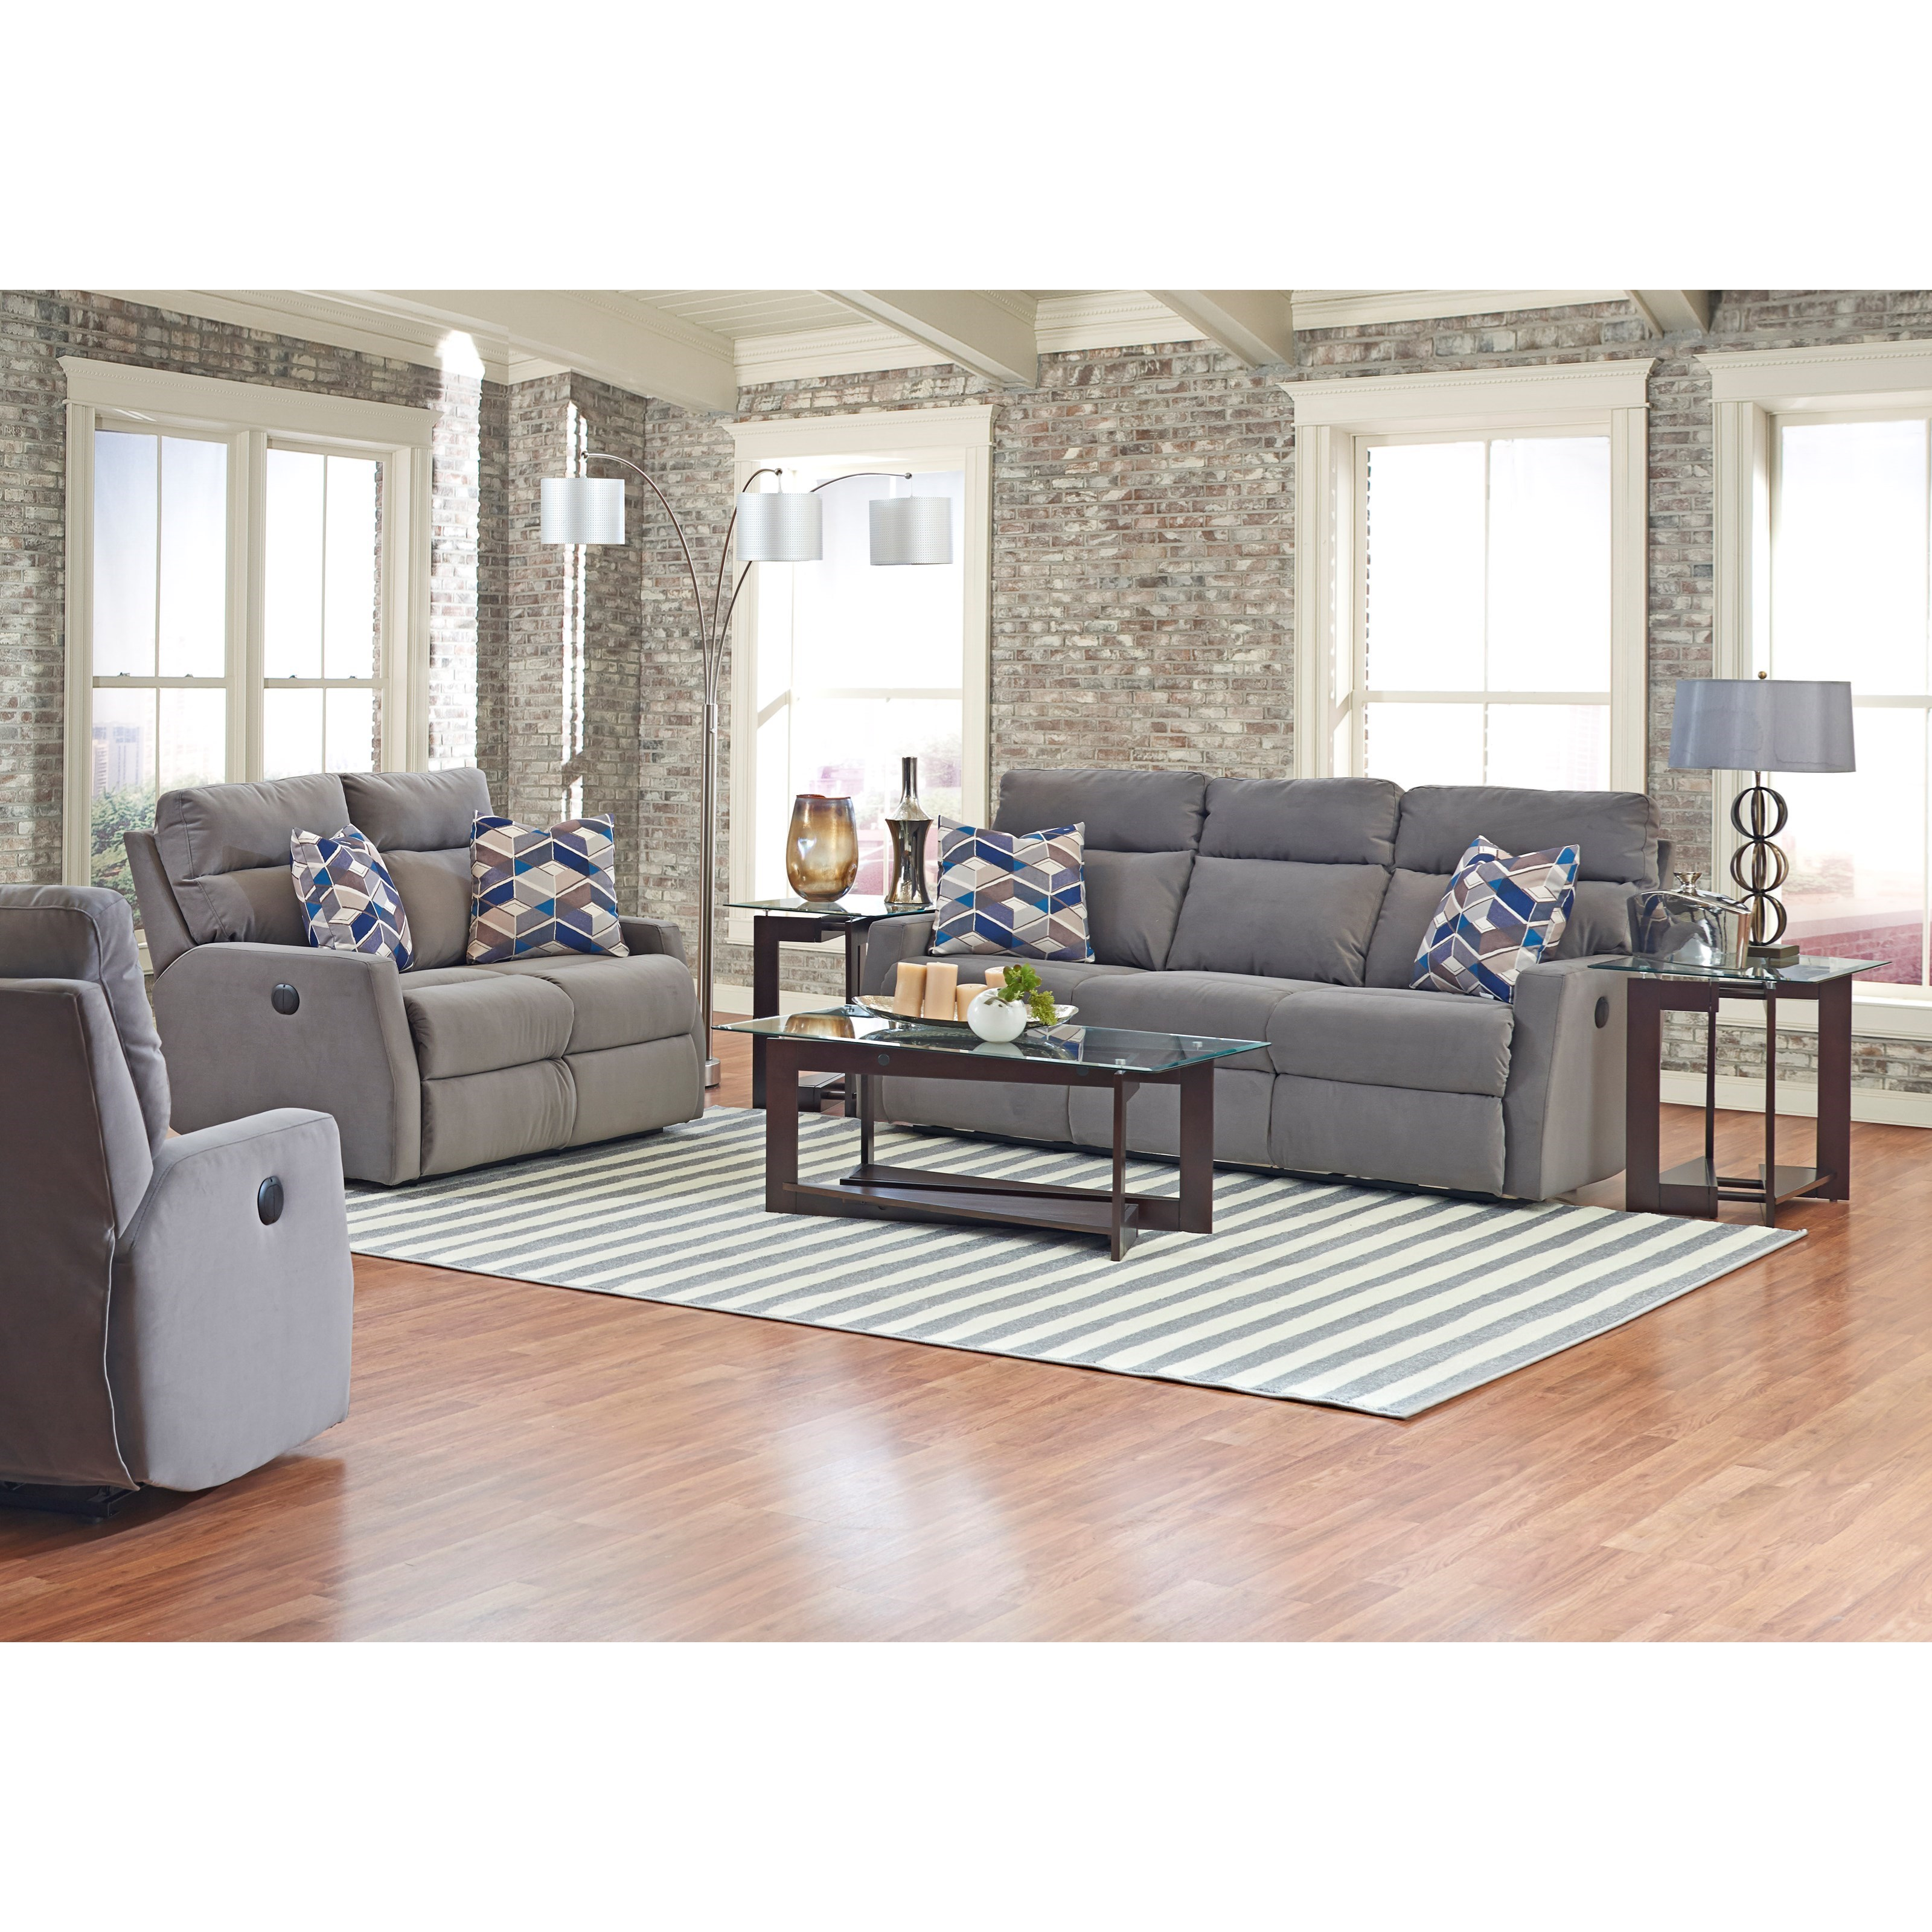 Daphne Power Reclining Living Room Group by Klaussner at Northeast Factory Direct